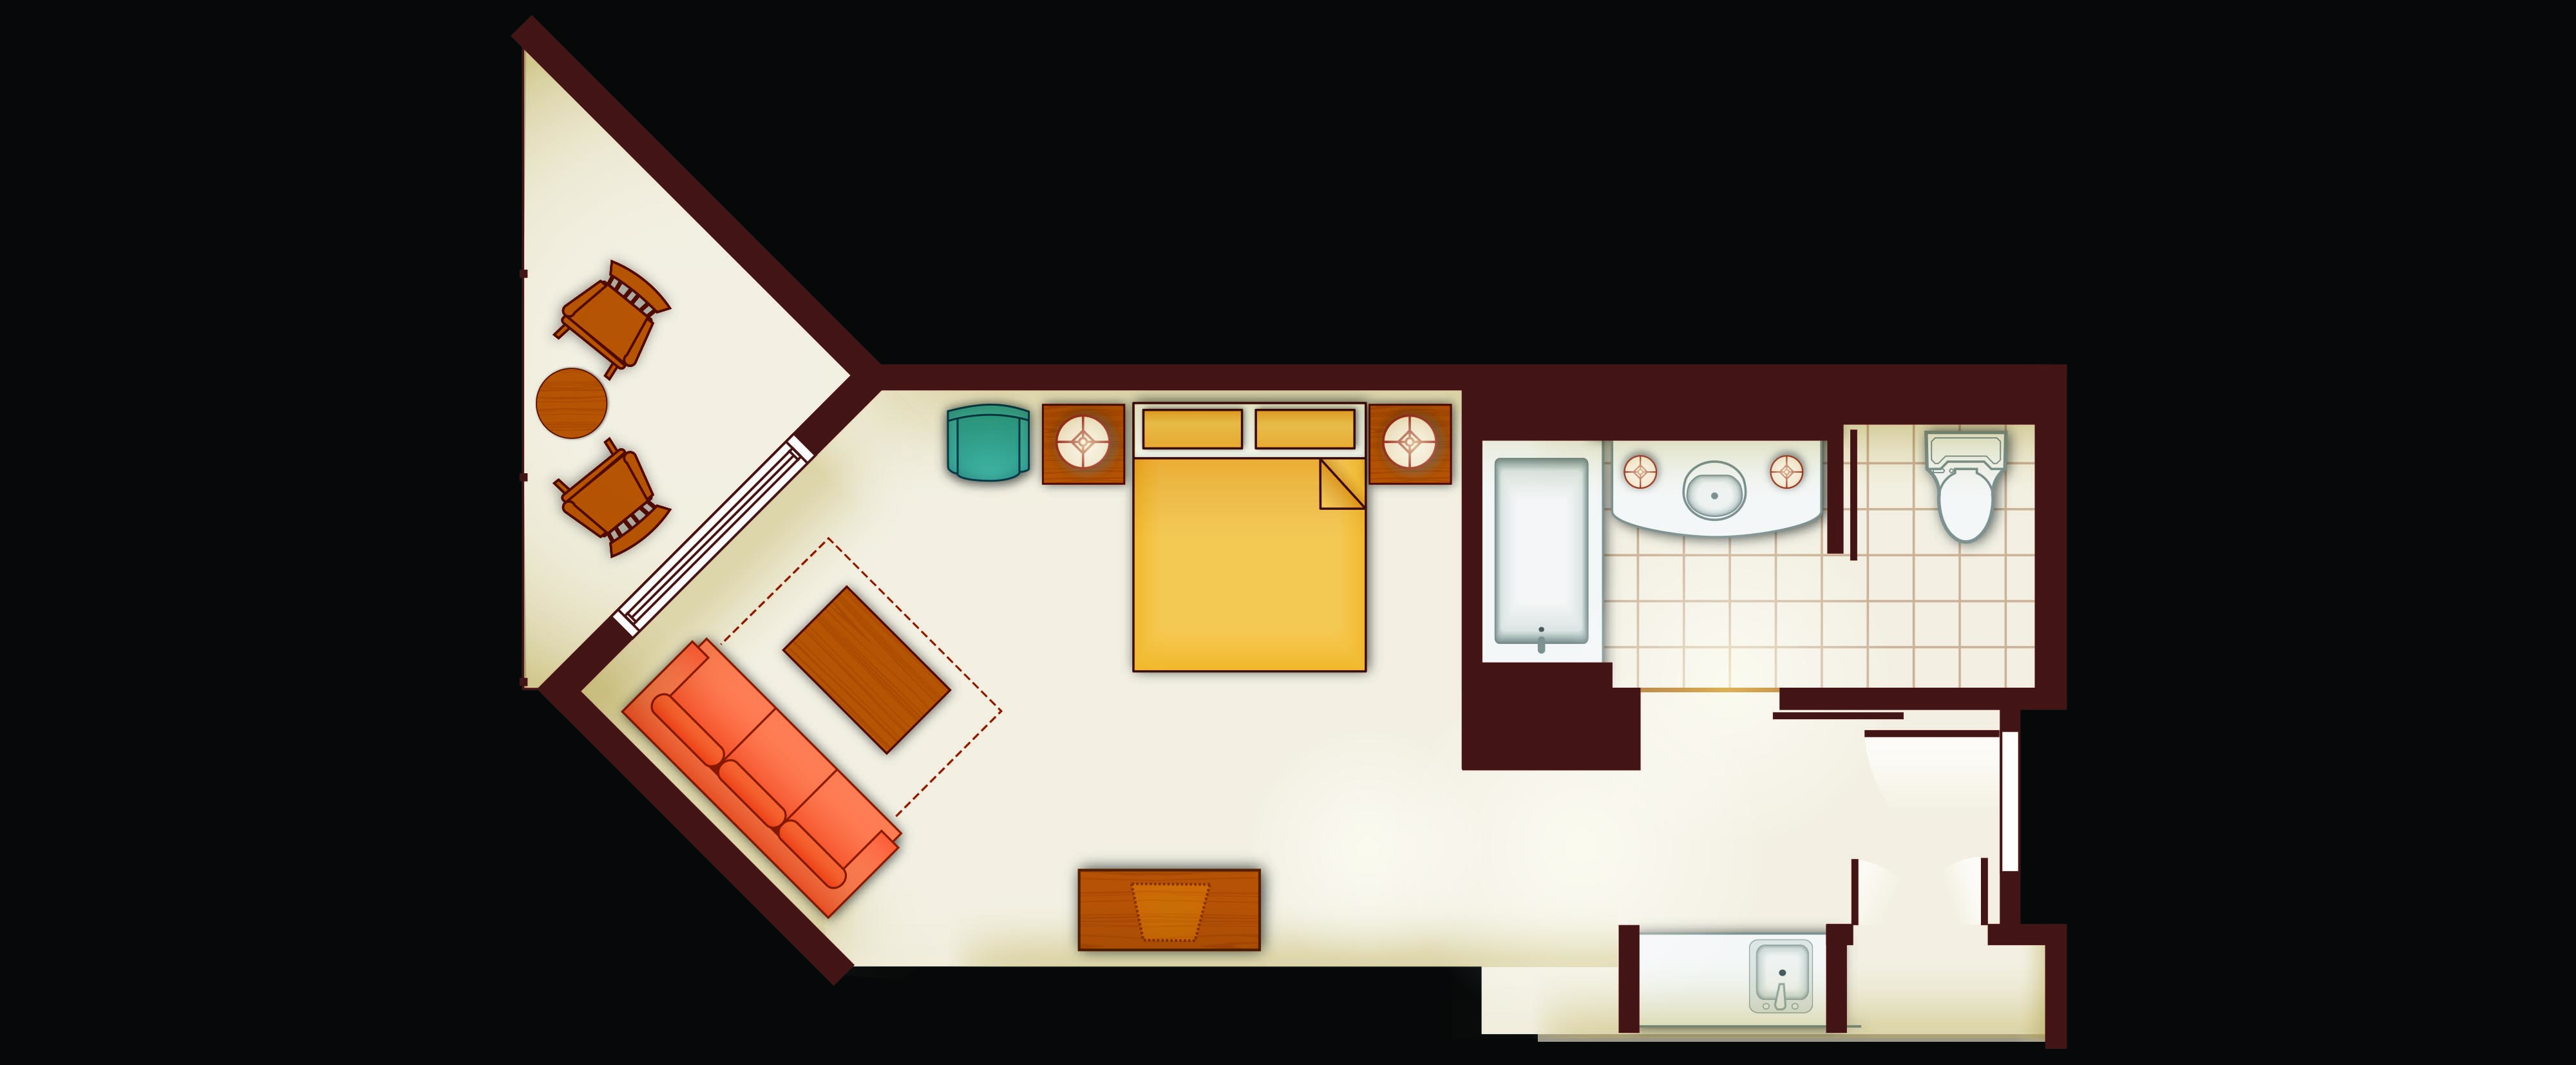 Floor Plan of a Deluxe Studio Villa